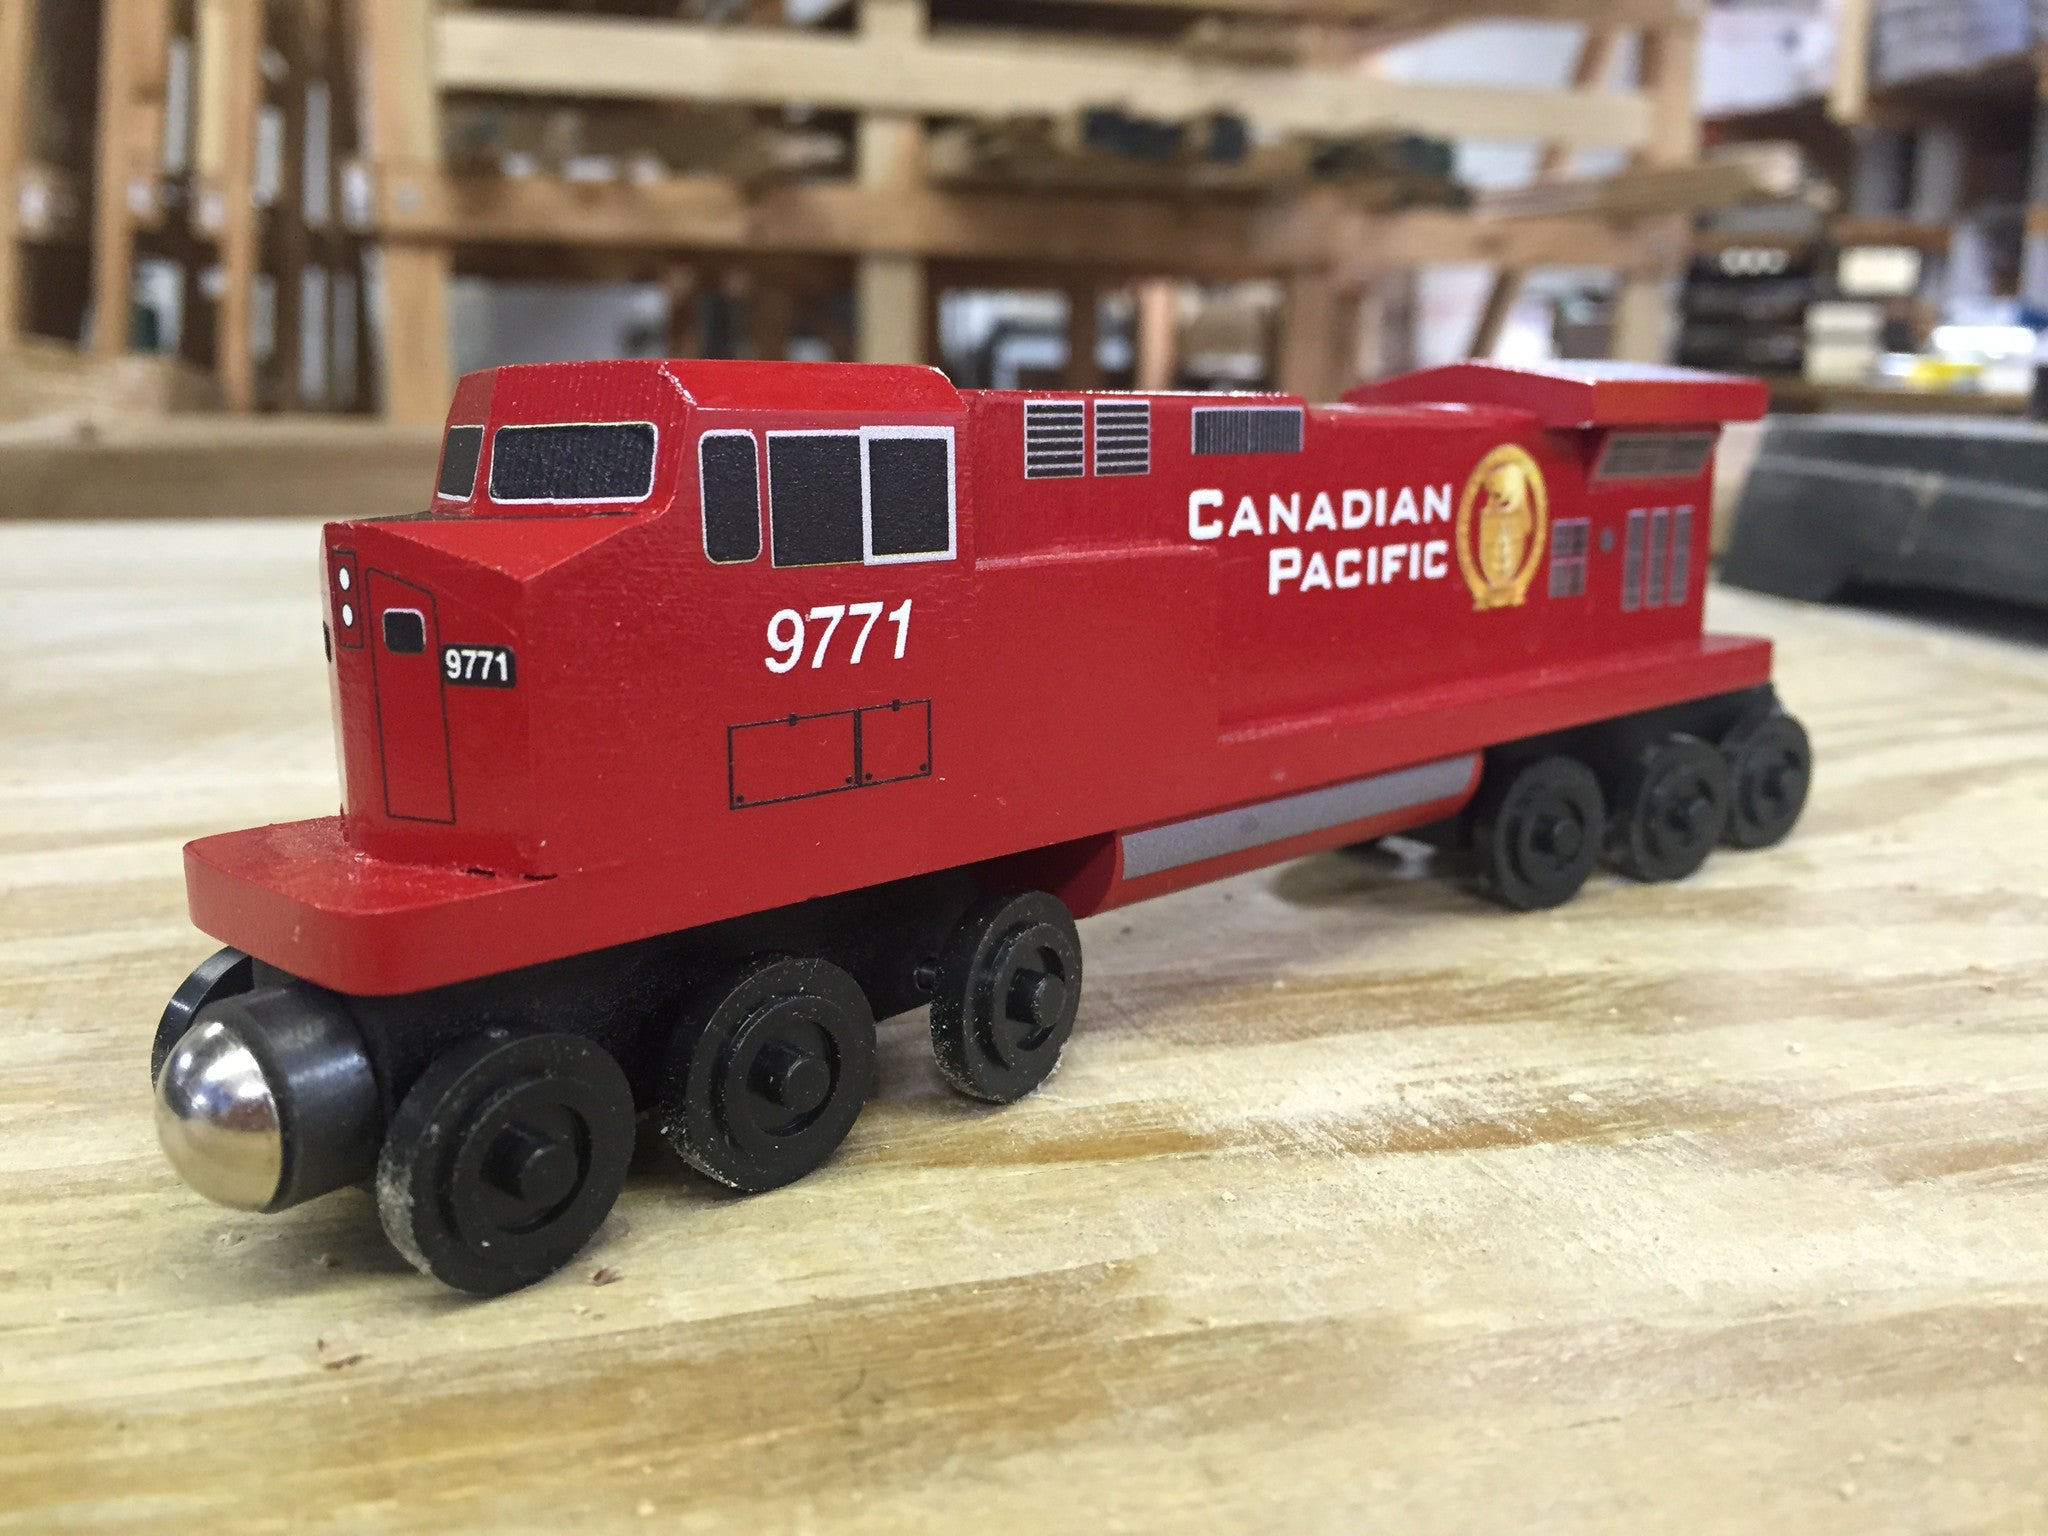 Canadian Pacific C-44 Diesel Engine